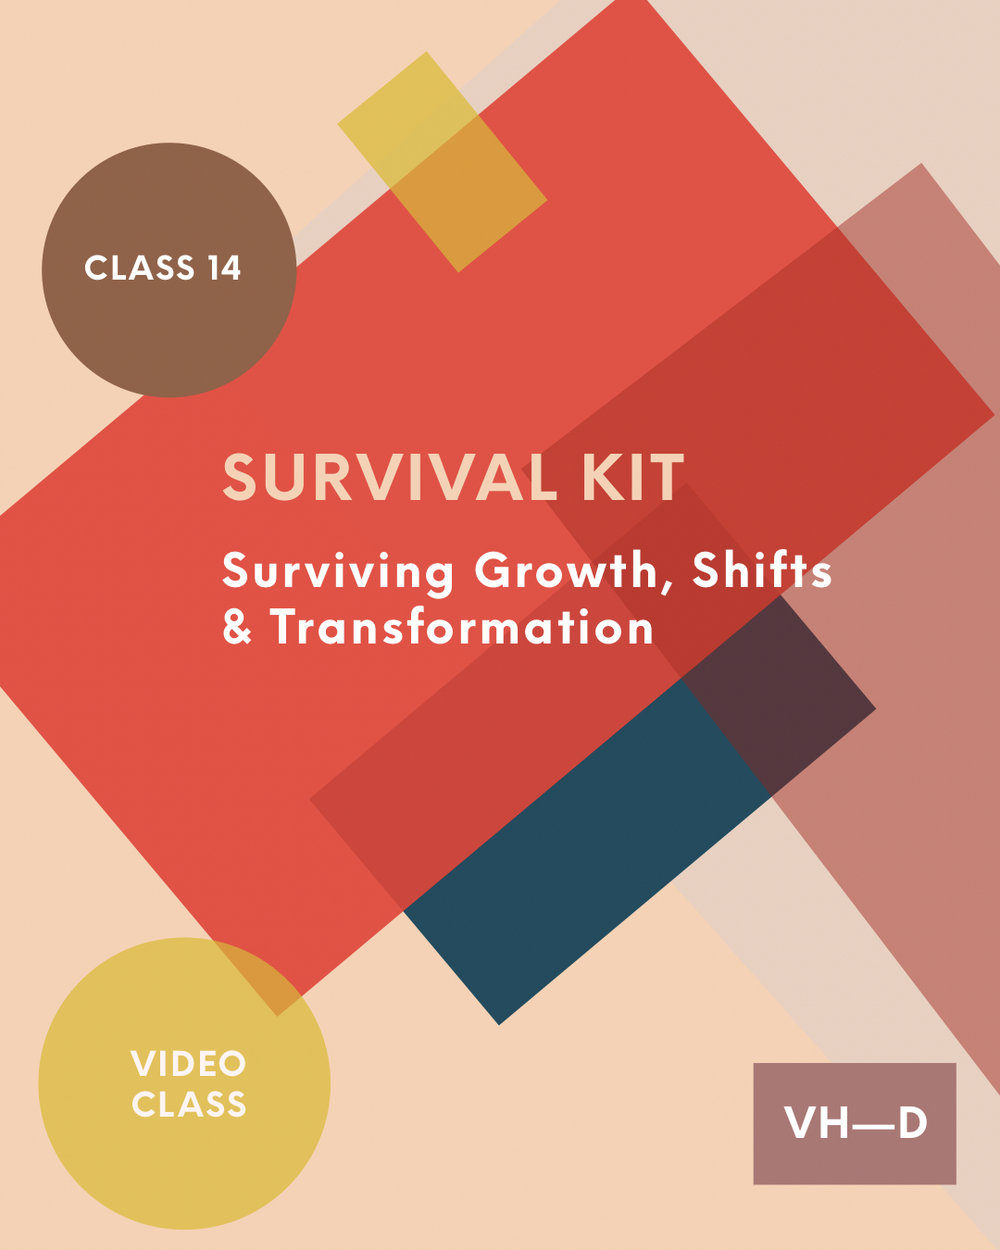 Subject 14: Survival Kit - Surviving Growth, Shifts & TransformationSurviving certain life experiences can be no joke! Until, that is you have in place a 'survival kit' to get you through, over, and beyond, to the other side. Growth, shifts, and transformation, are all essential to life (and progressing in it). Sometimes, this is accompanied by growing pains, challenges, and uncertain times.I've learned to turn survival into an art. For one because I had to, and secondly, because I believe in the force of vibrating higher daily and journeying in power. Spiritually speaking, all things end up working for our good. But it's a whole other thing to feel like you're thriving through periods of growth, shifts, and transformation – with purpose.More in class!